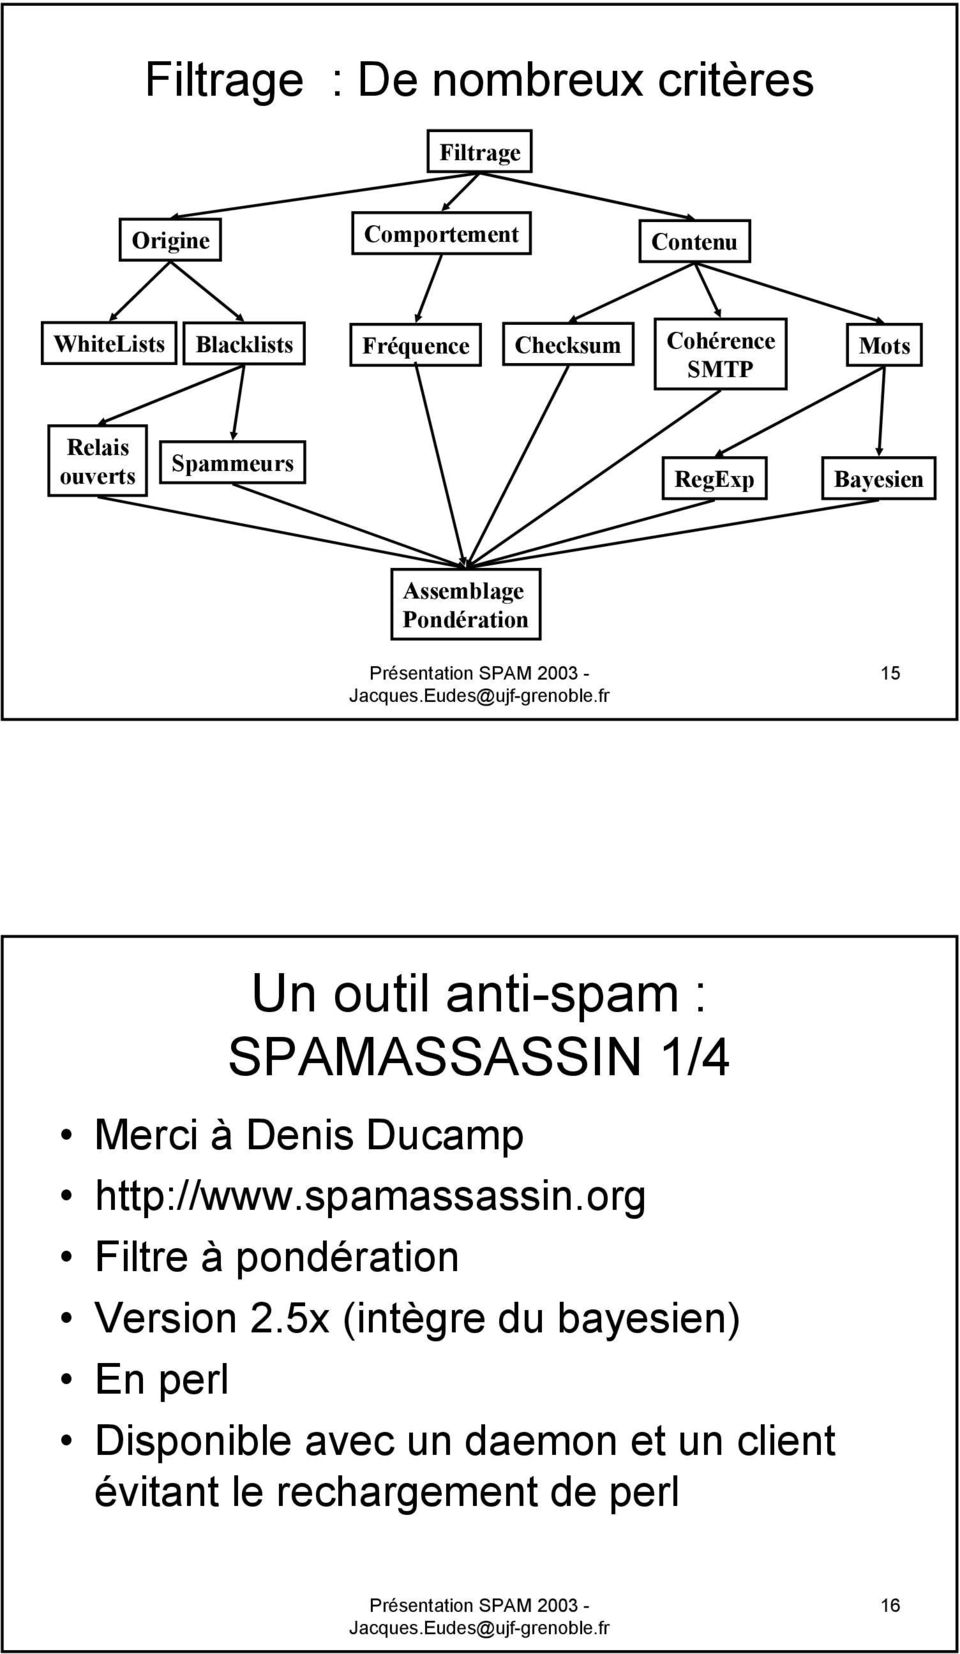 outil anti-spam : SPAMASSASSIN 1/4 Merci à Denis Ducamp http://www..org Filtre à pondération Version 2.